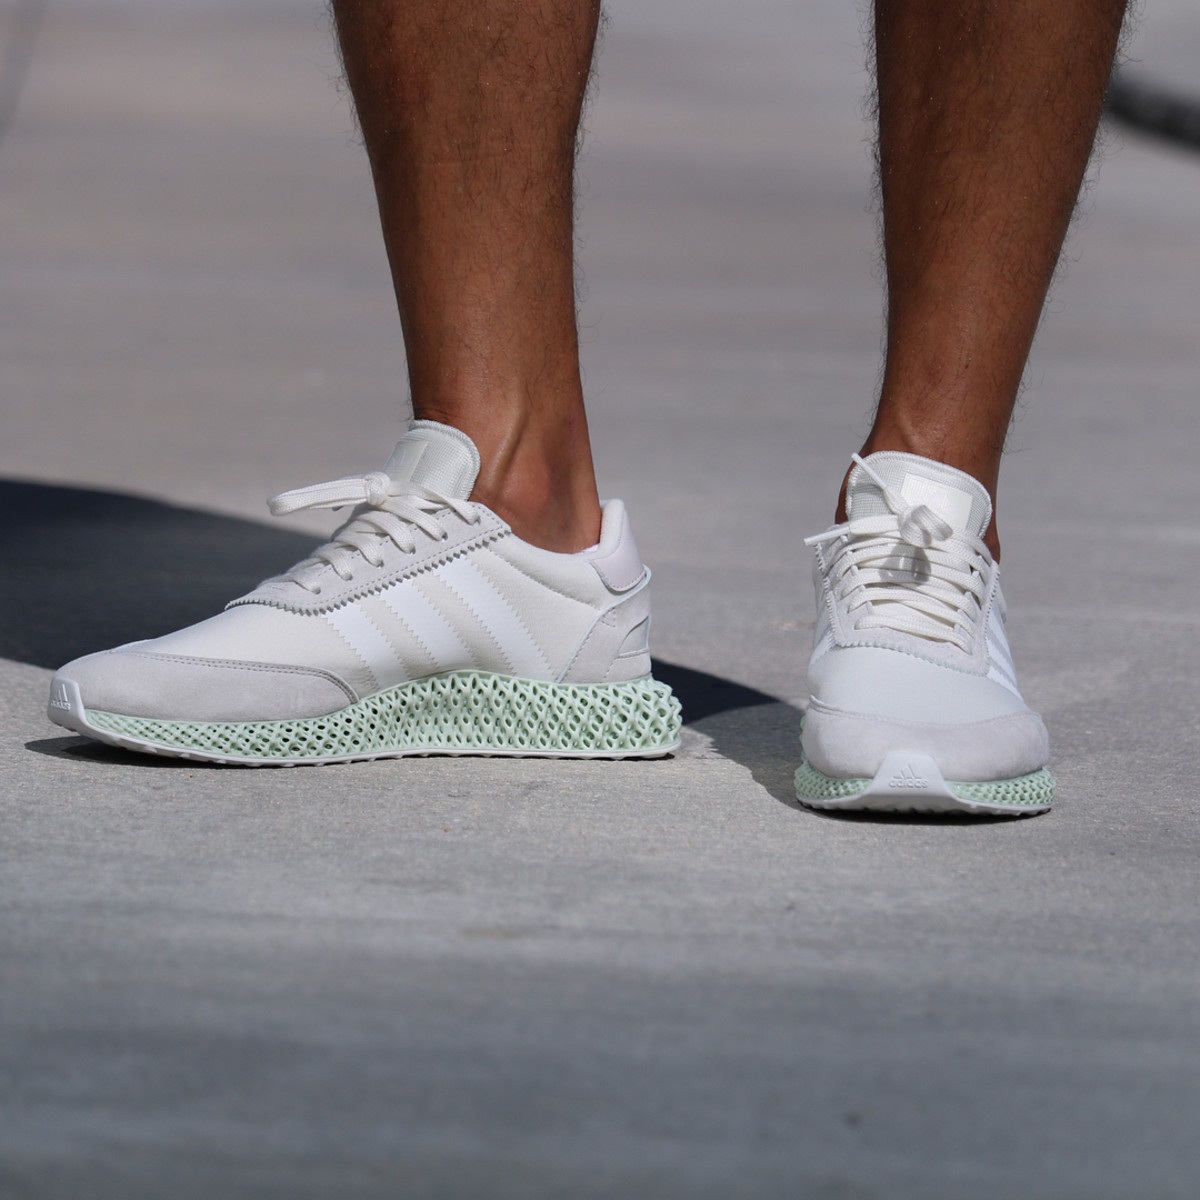 adidas-4d-5923-first-look-02